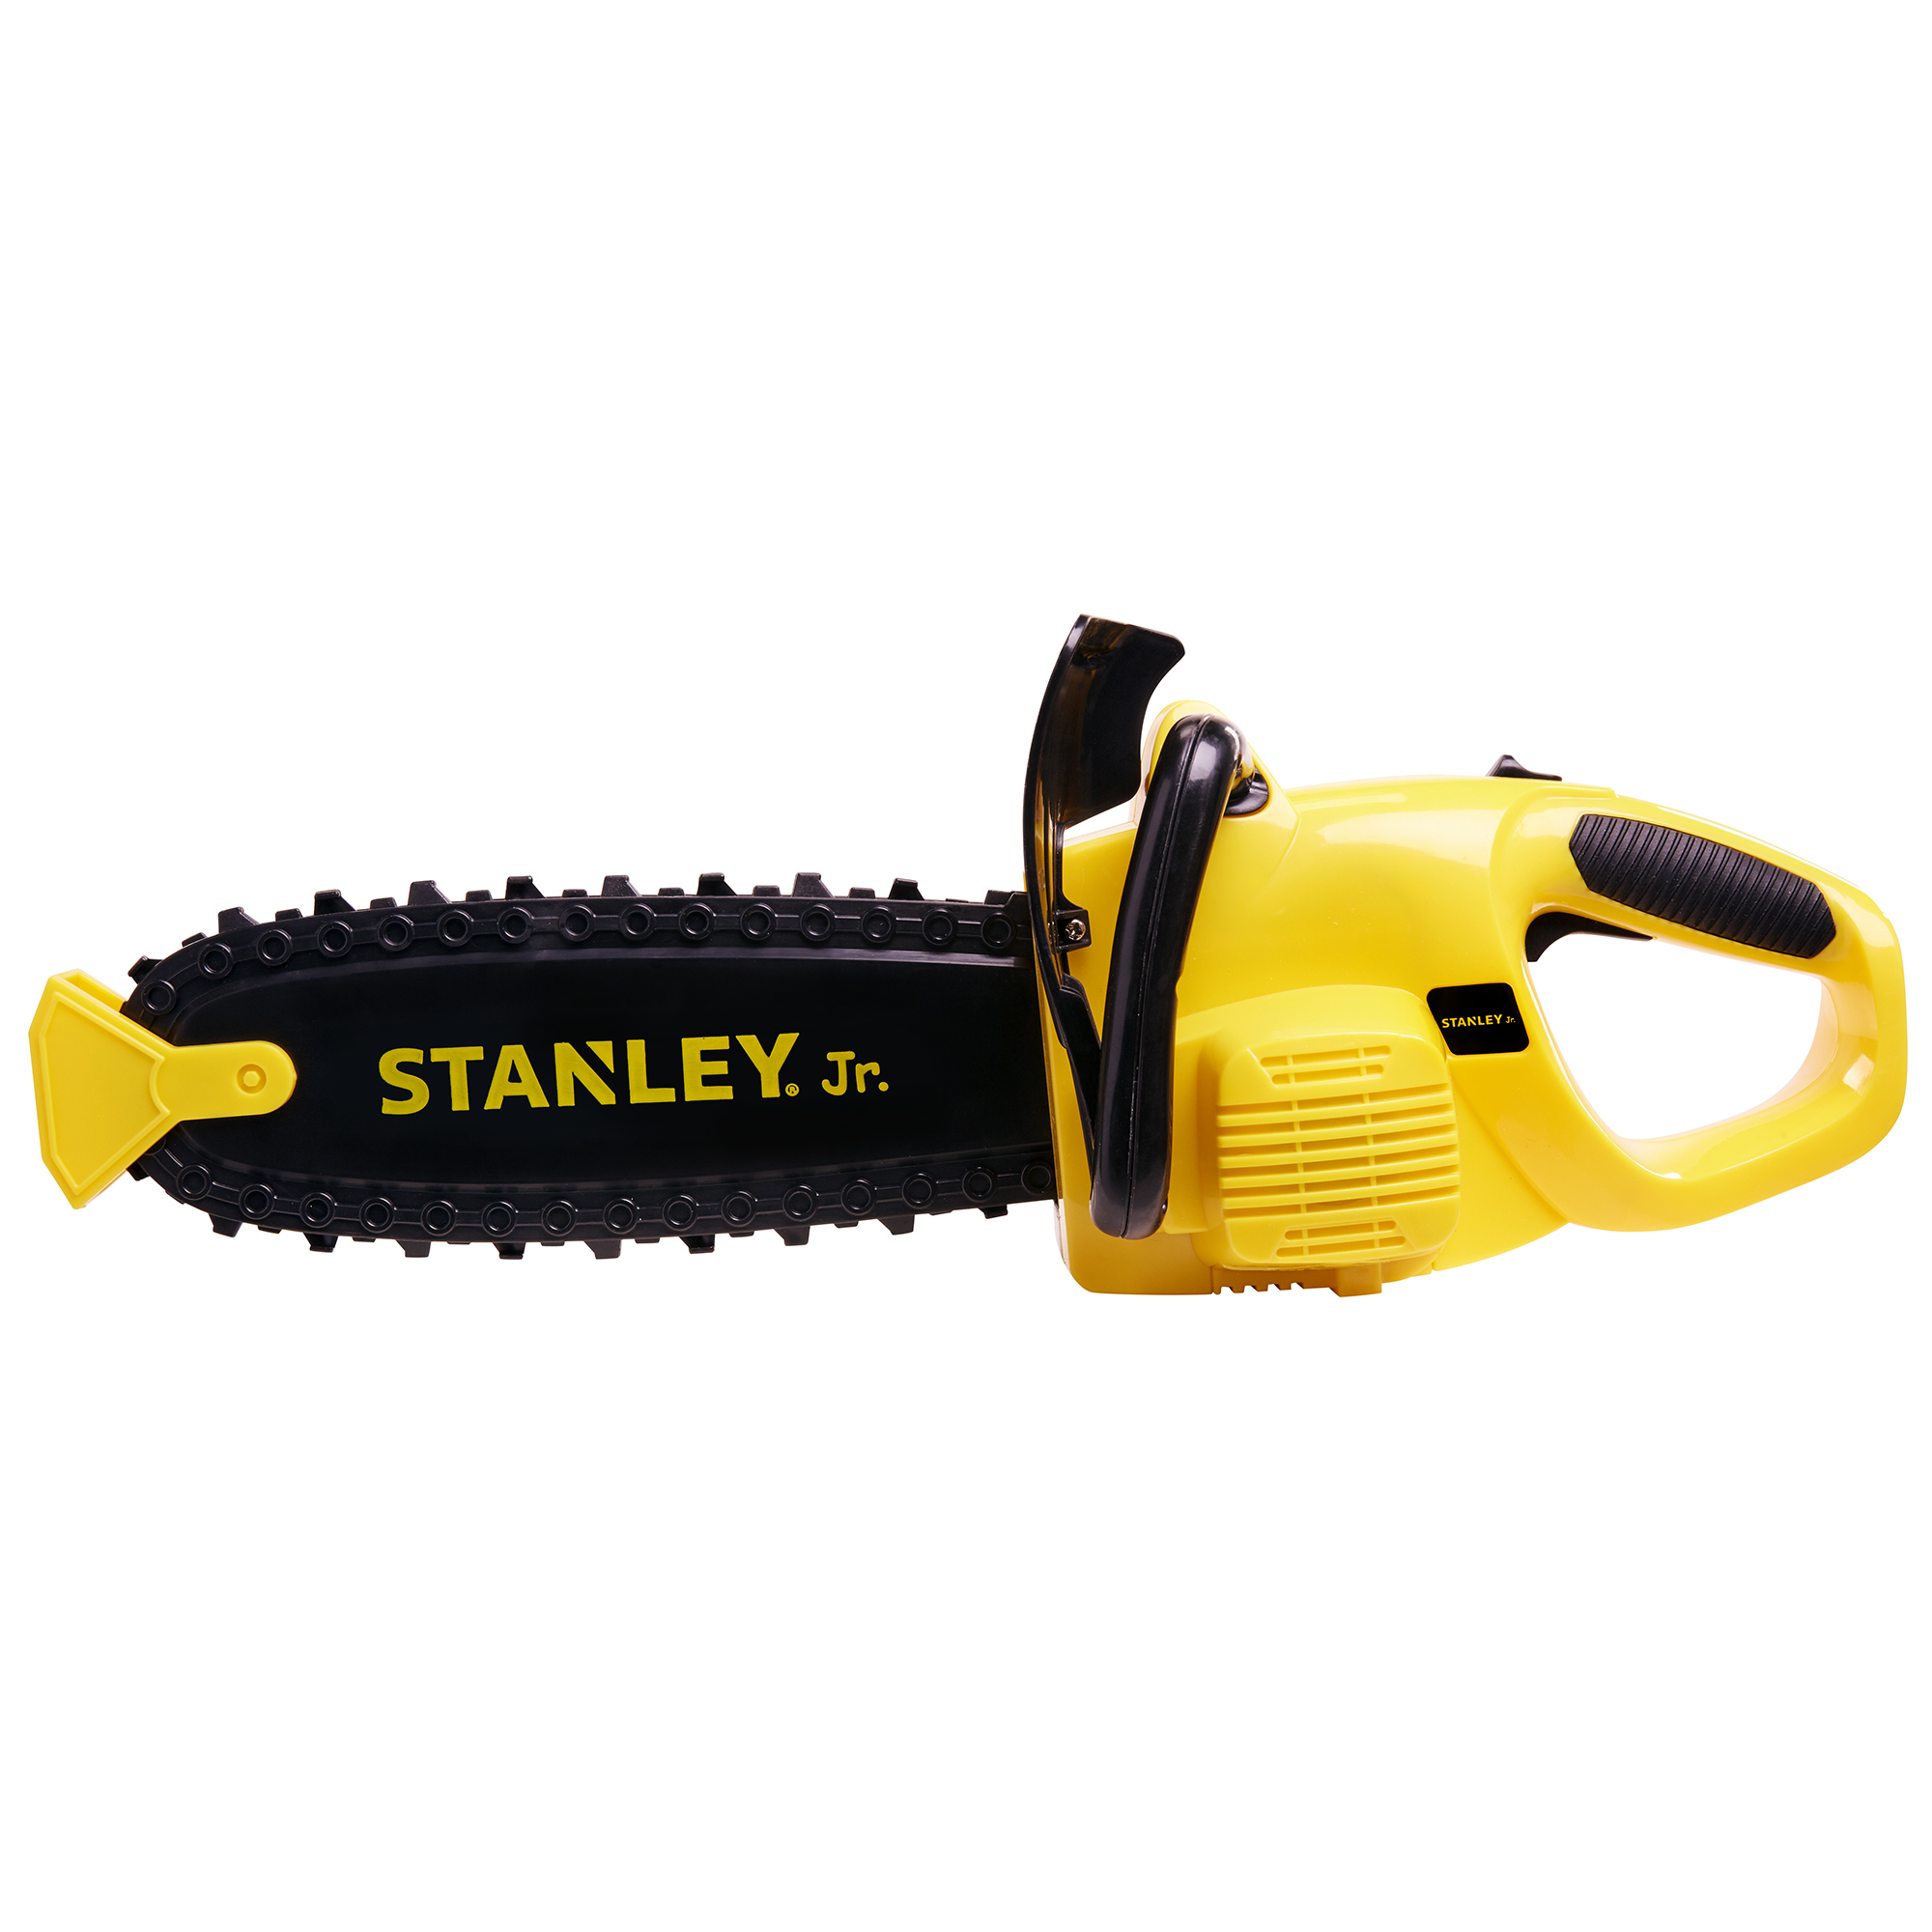 STANLEY™ Jr Chainsaw